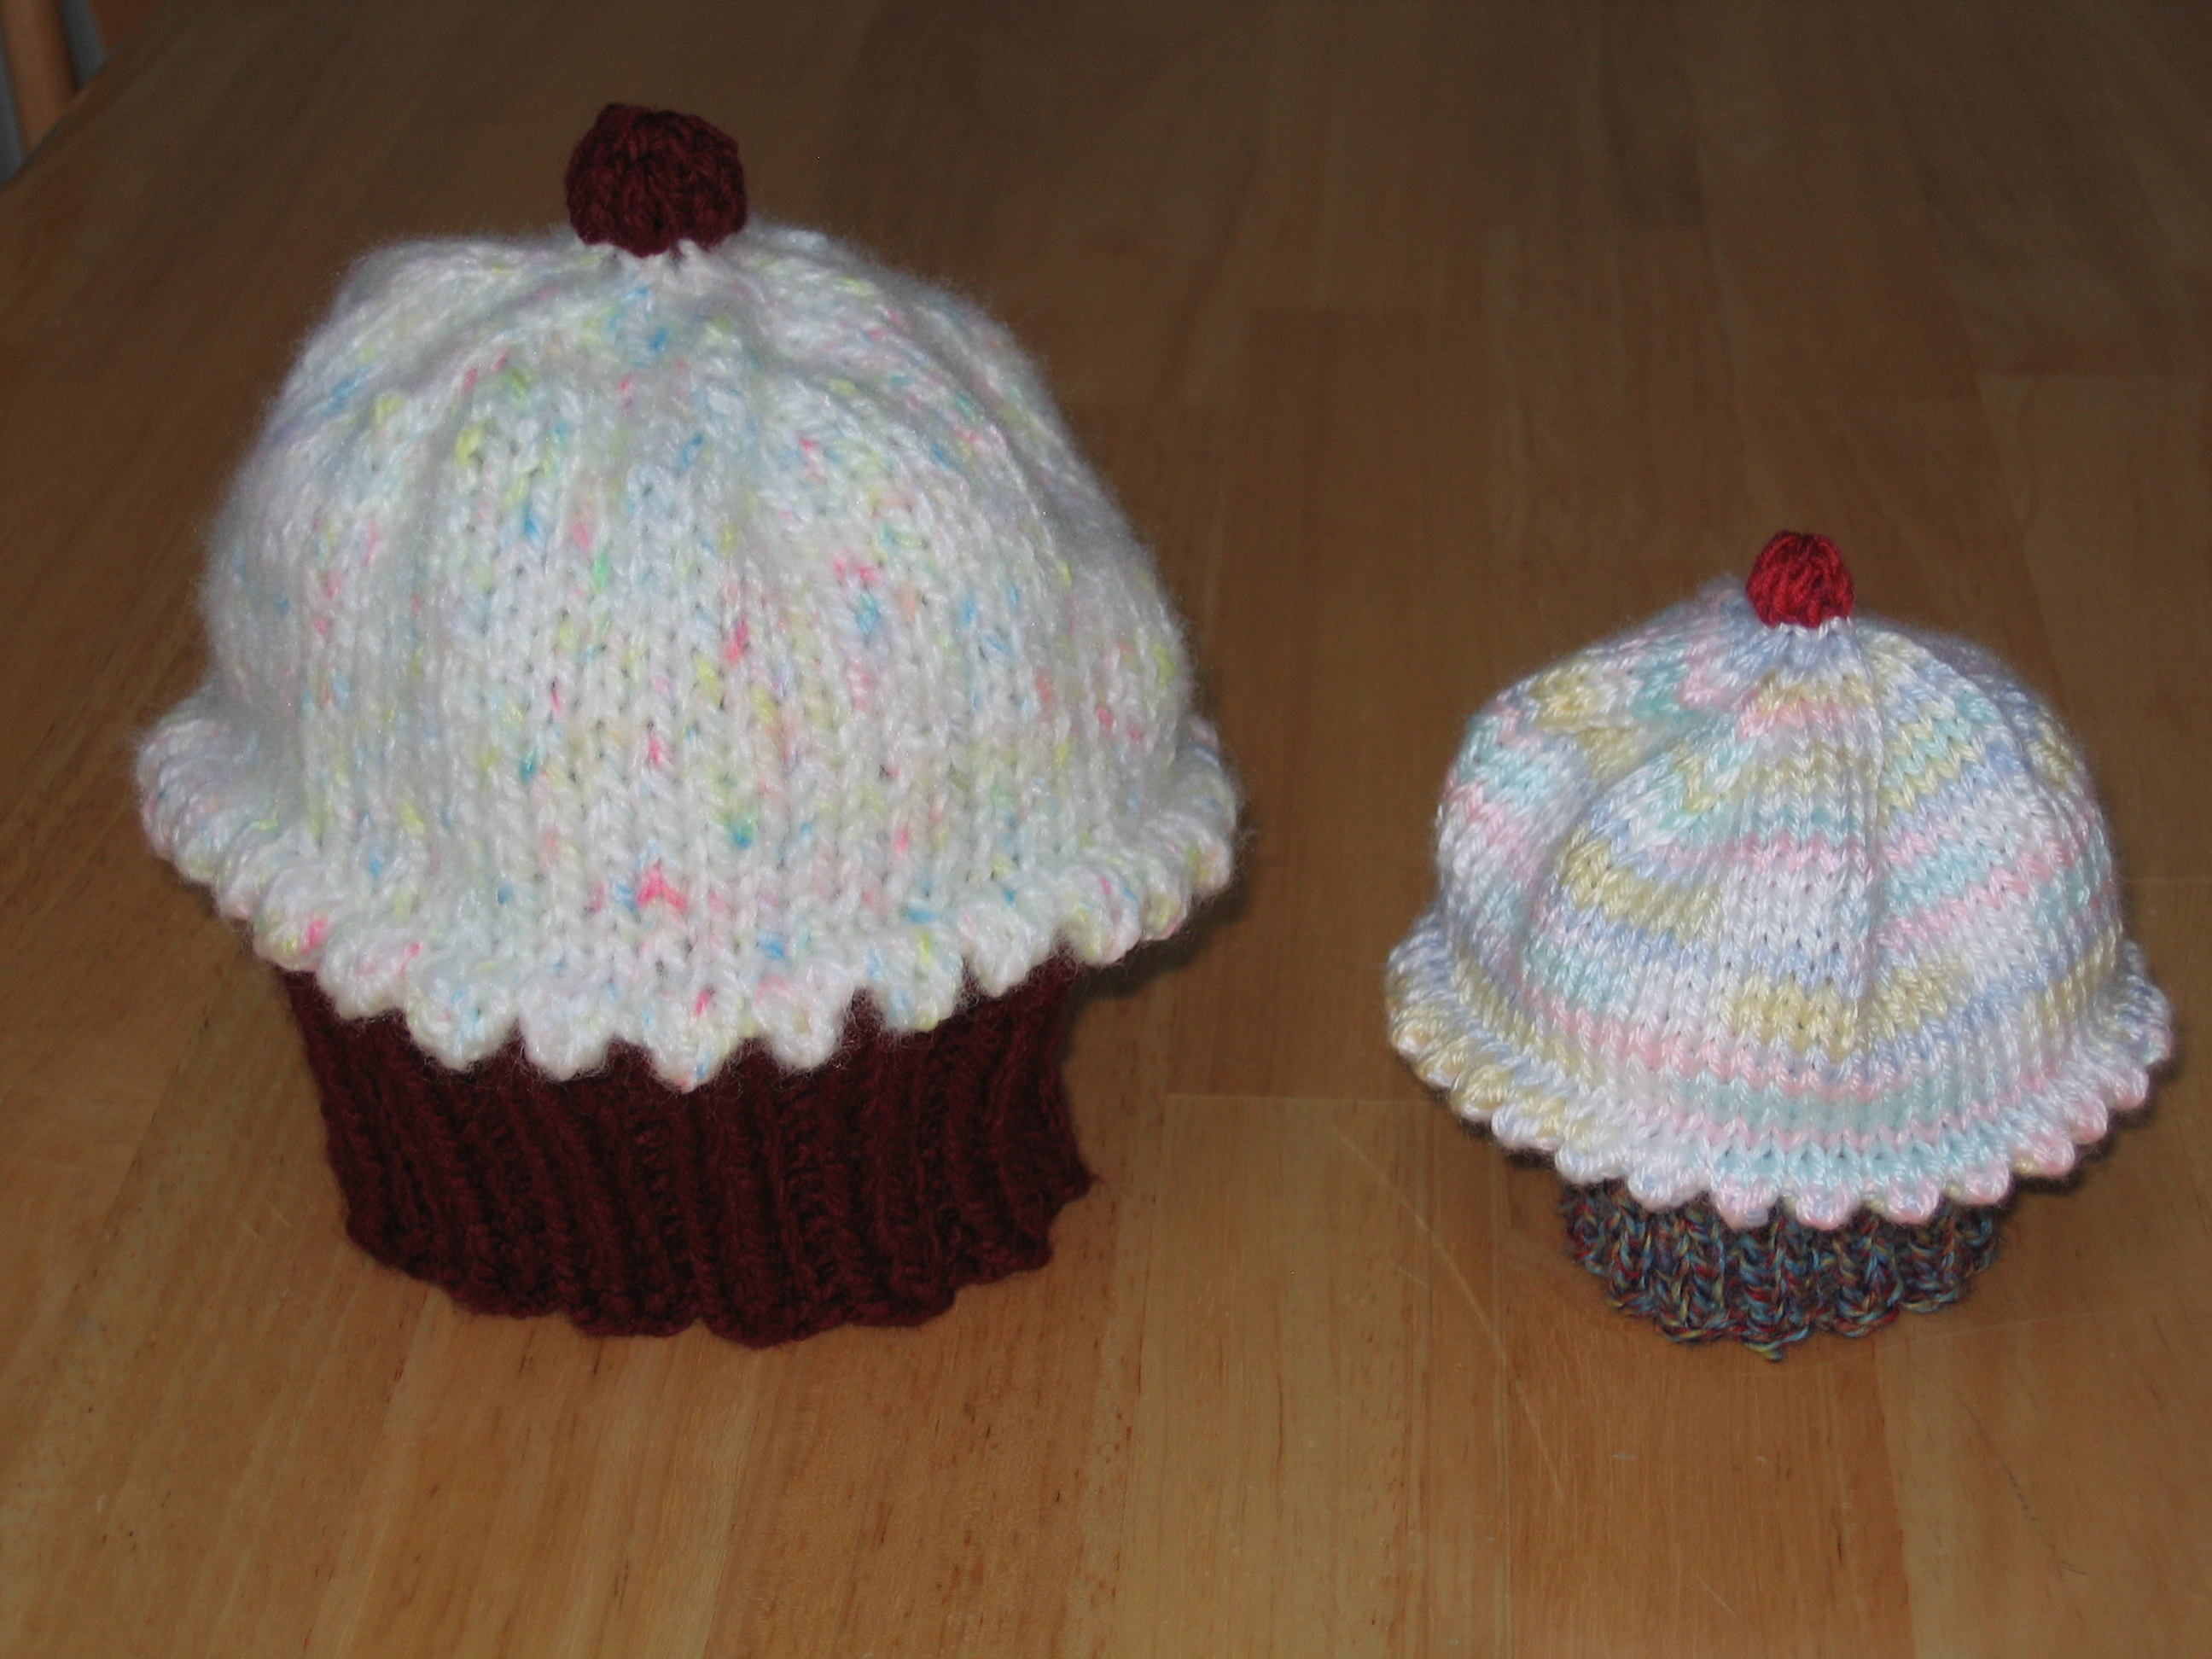 Knitting Patterns Galore - Yummy Cupcake Hat 2b8129b92db